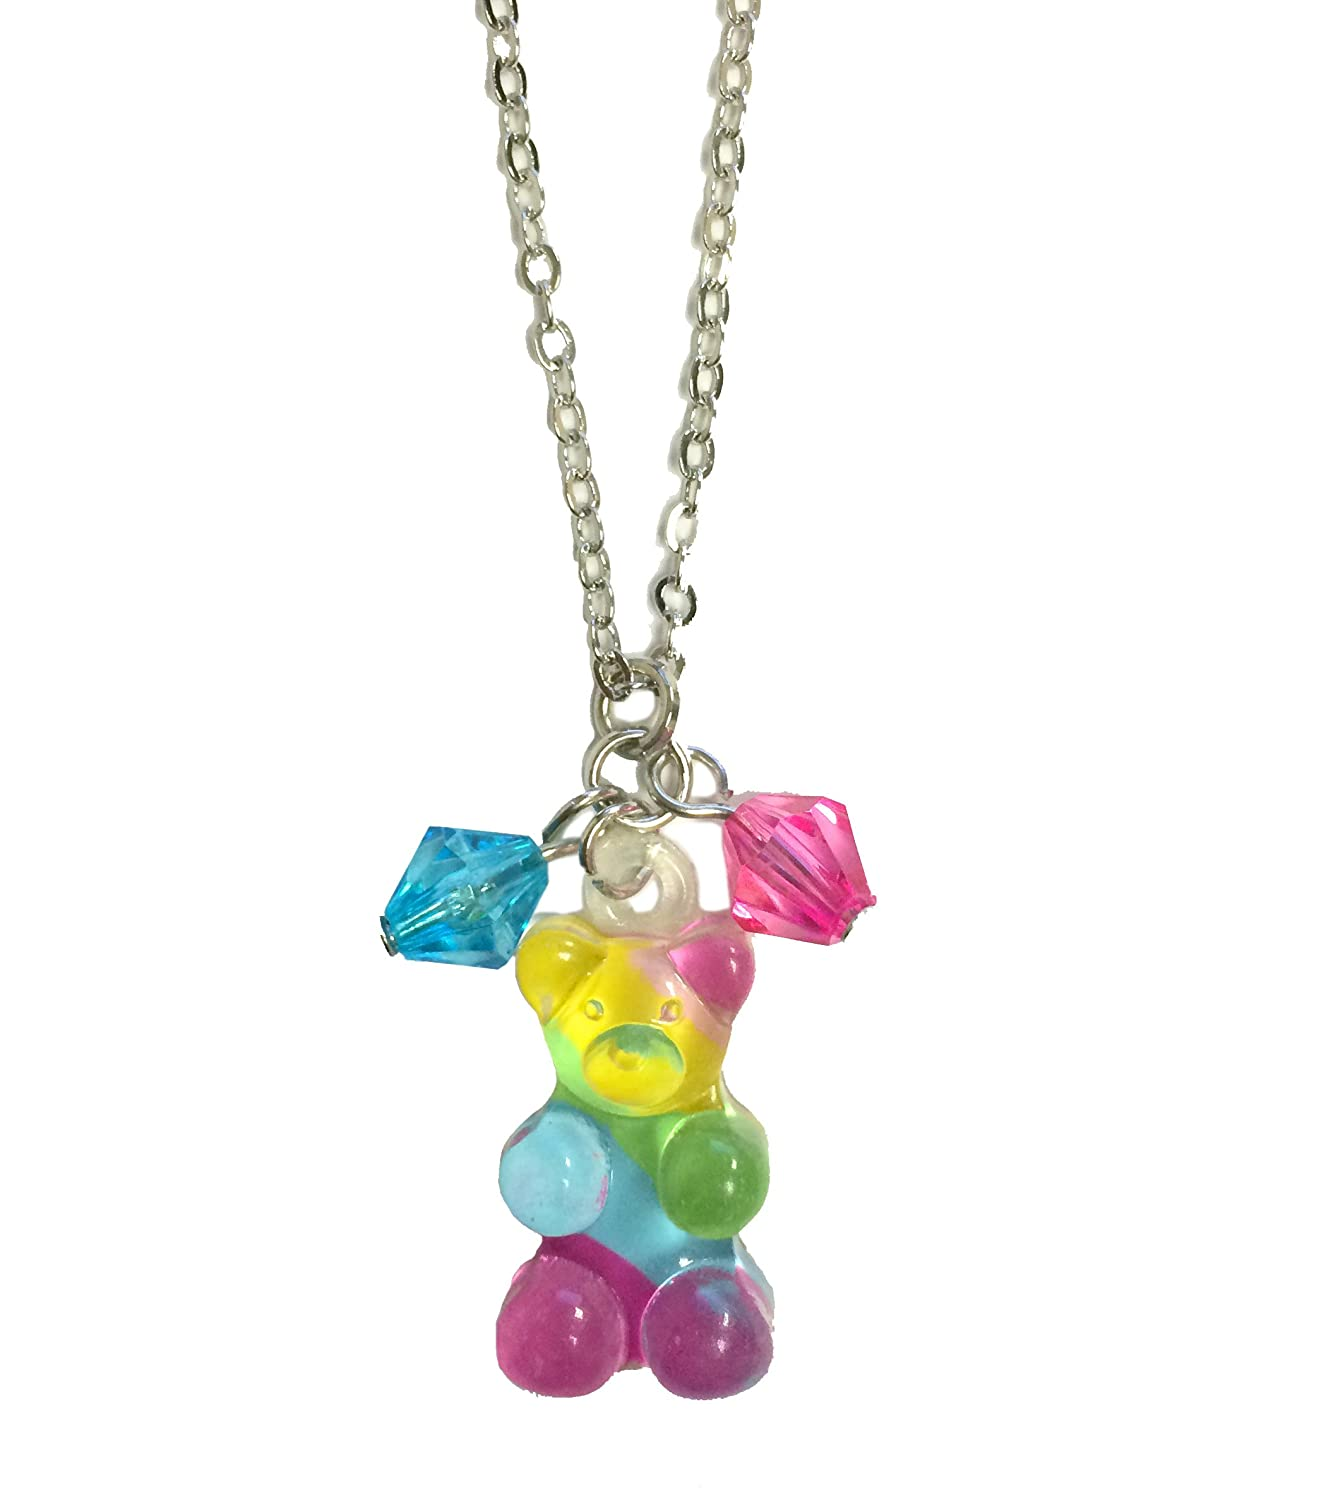 Candy Charms Jewelry Gummy Bear Candy Rainbow Charm